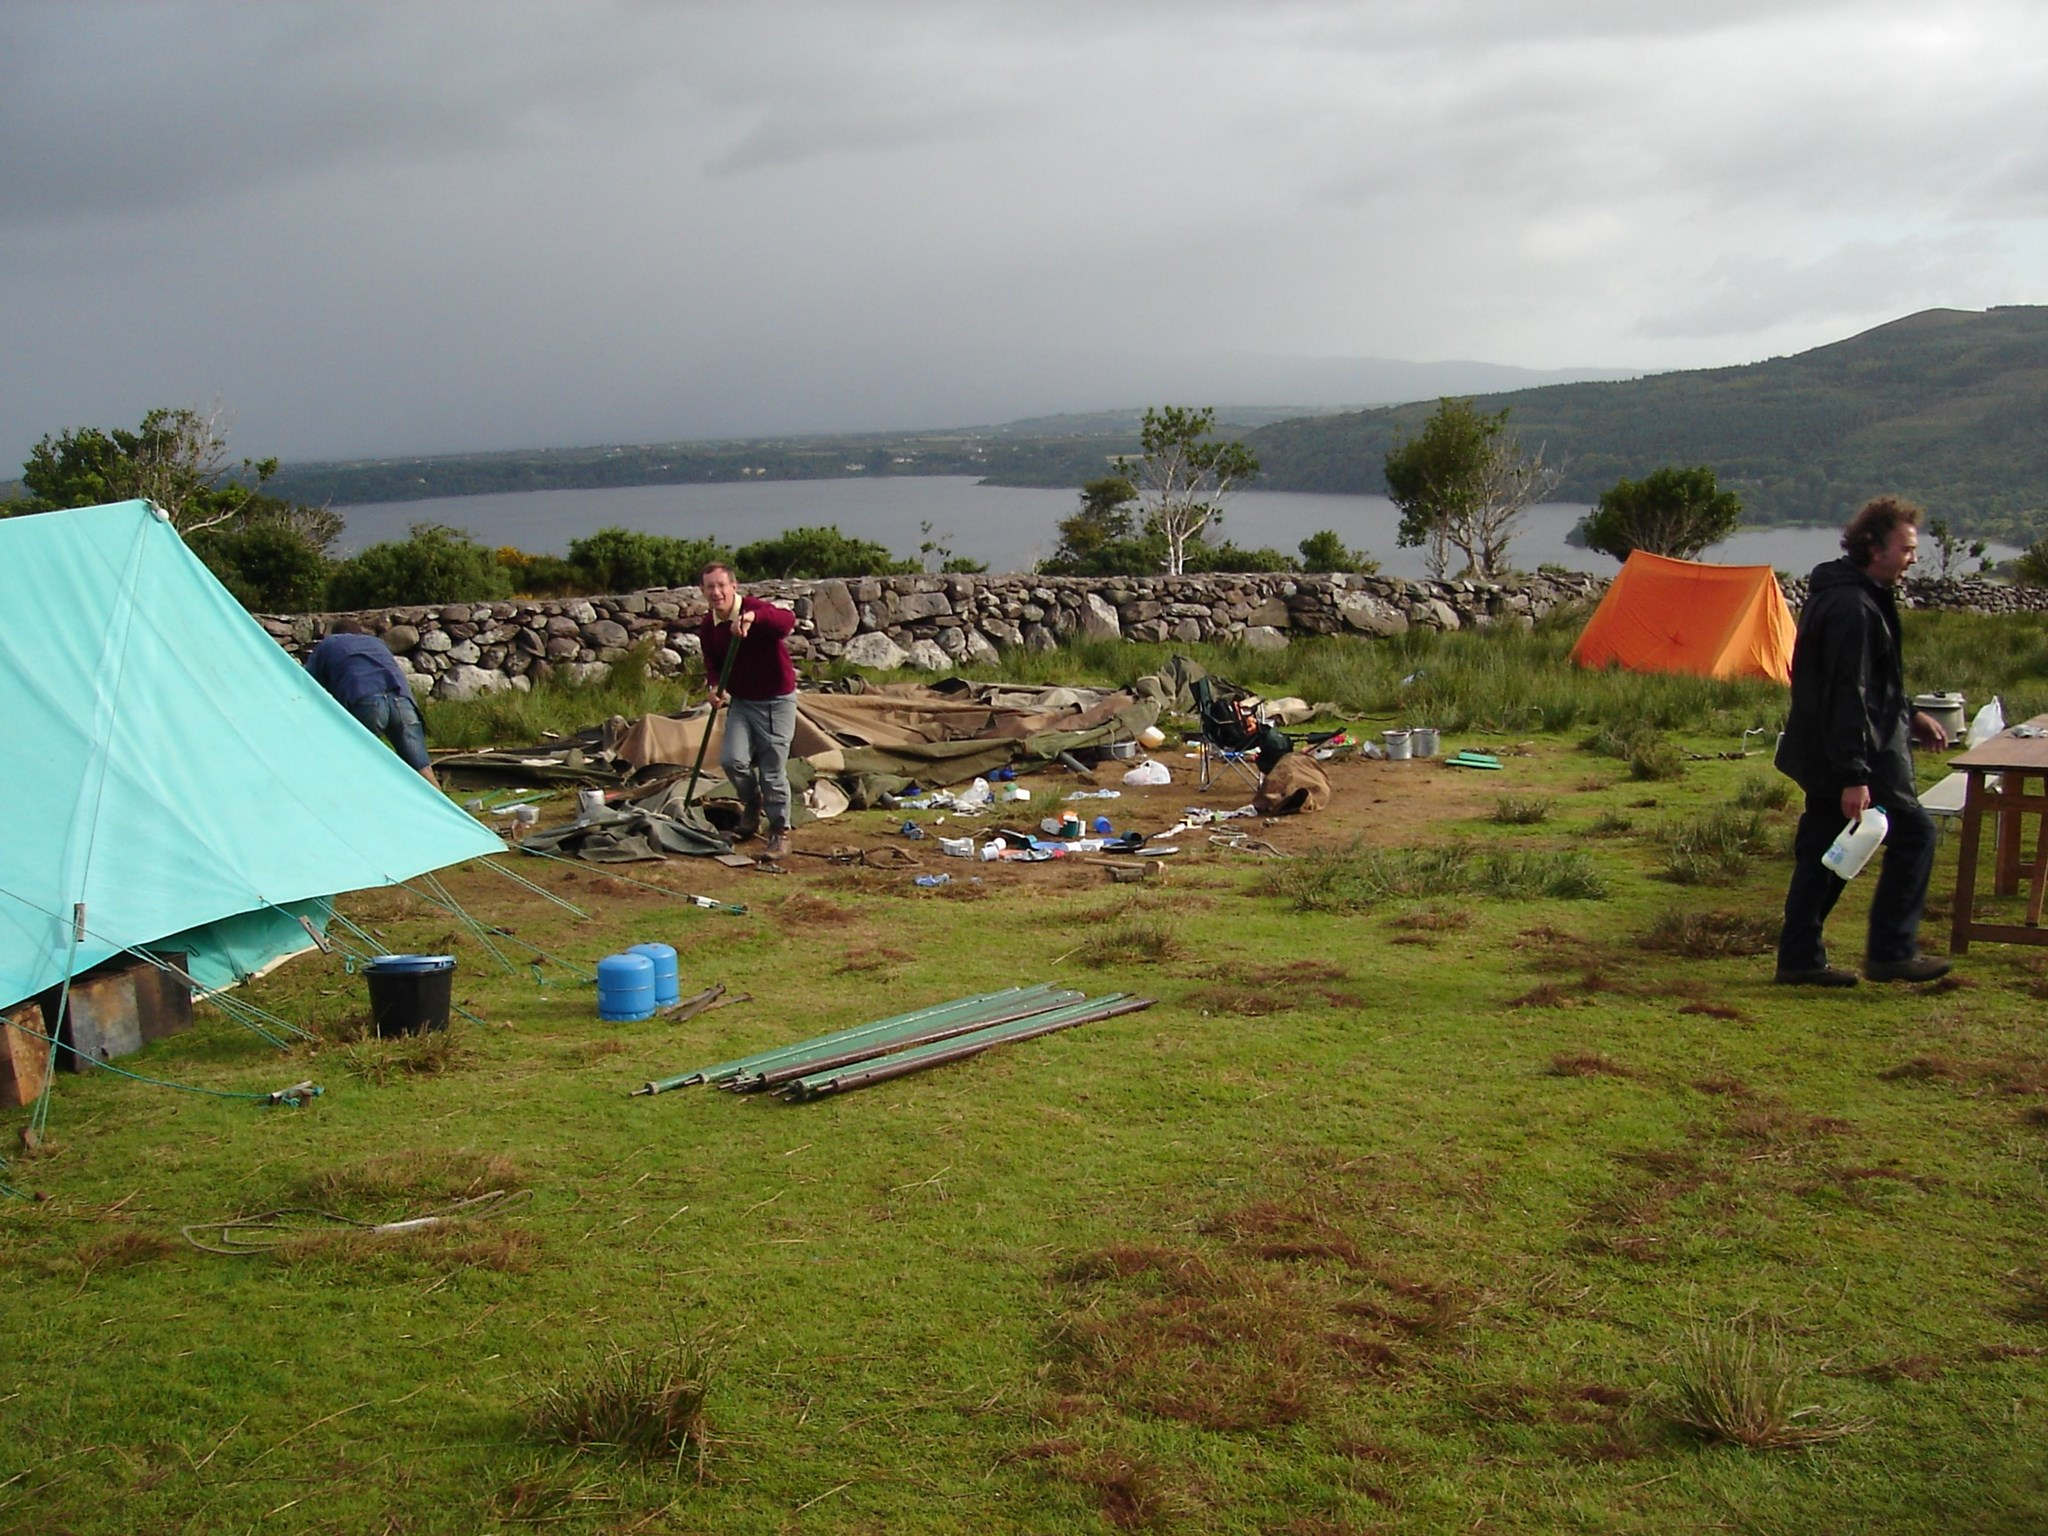 Helping to clear up after the storm, Summer Camp, Ireland, 2005, 24th August